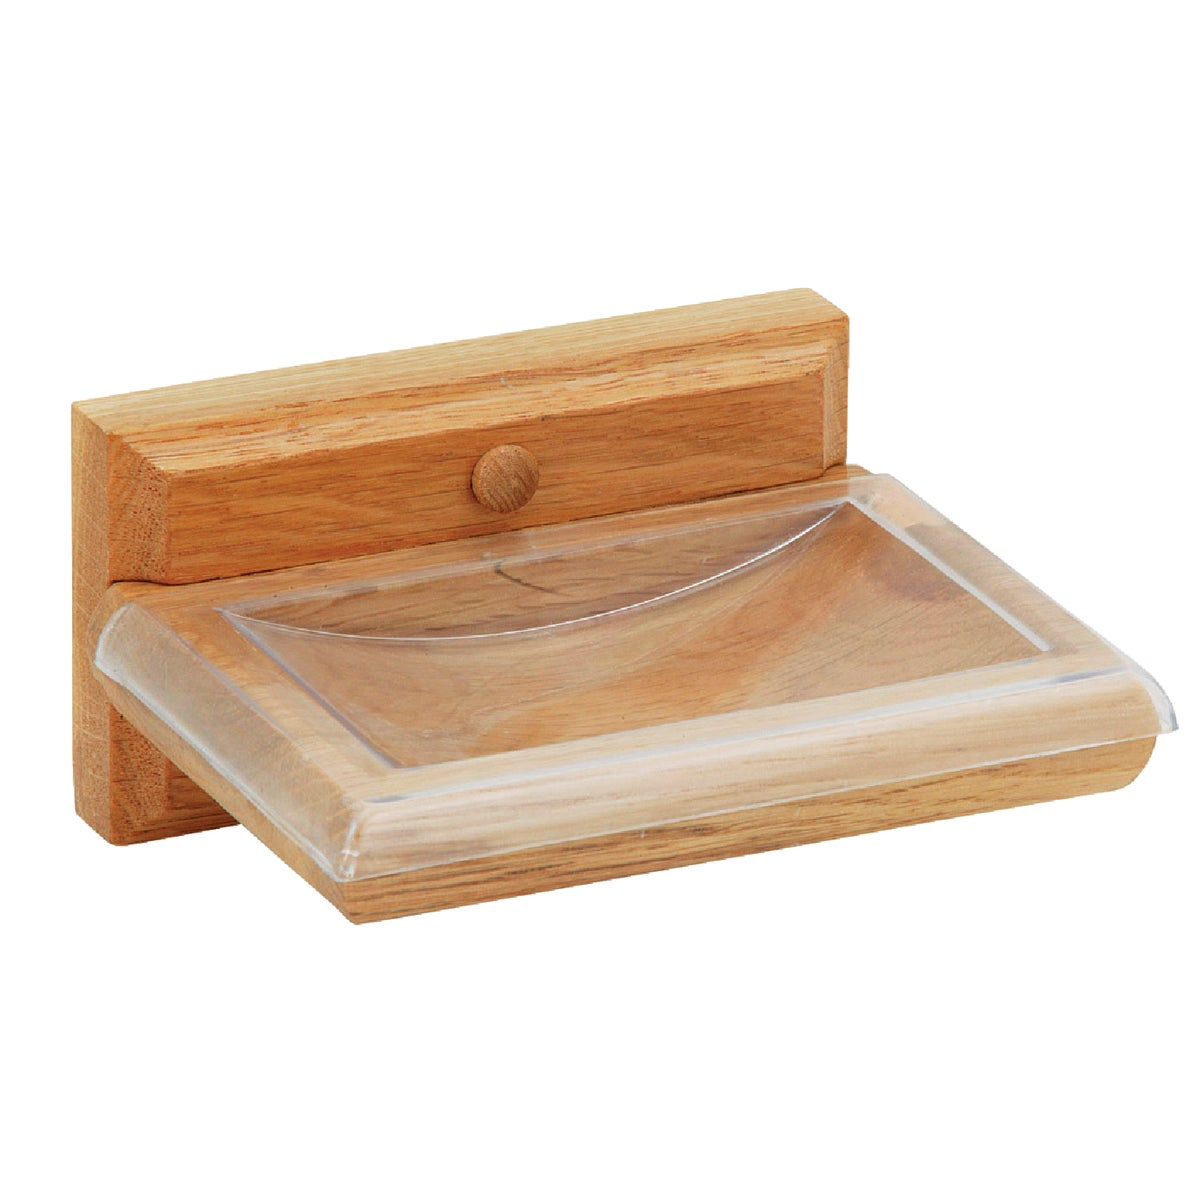 OAK SOAP DISH